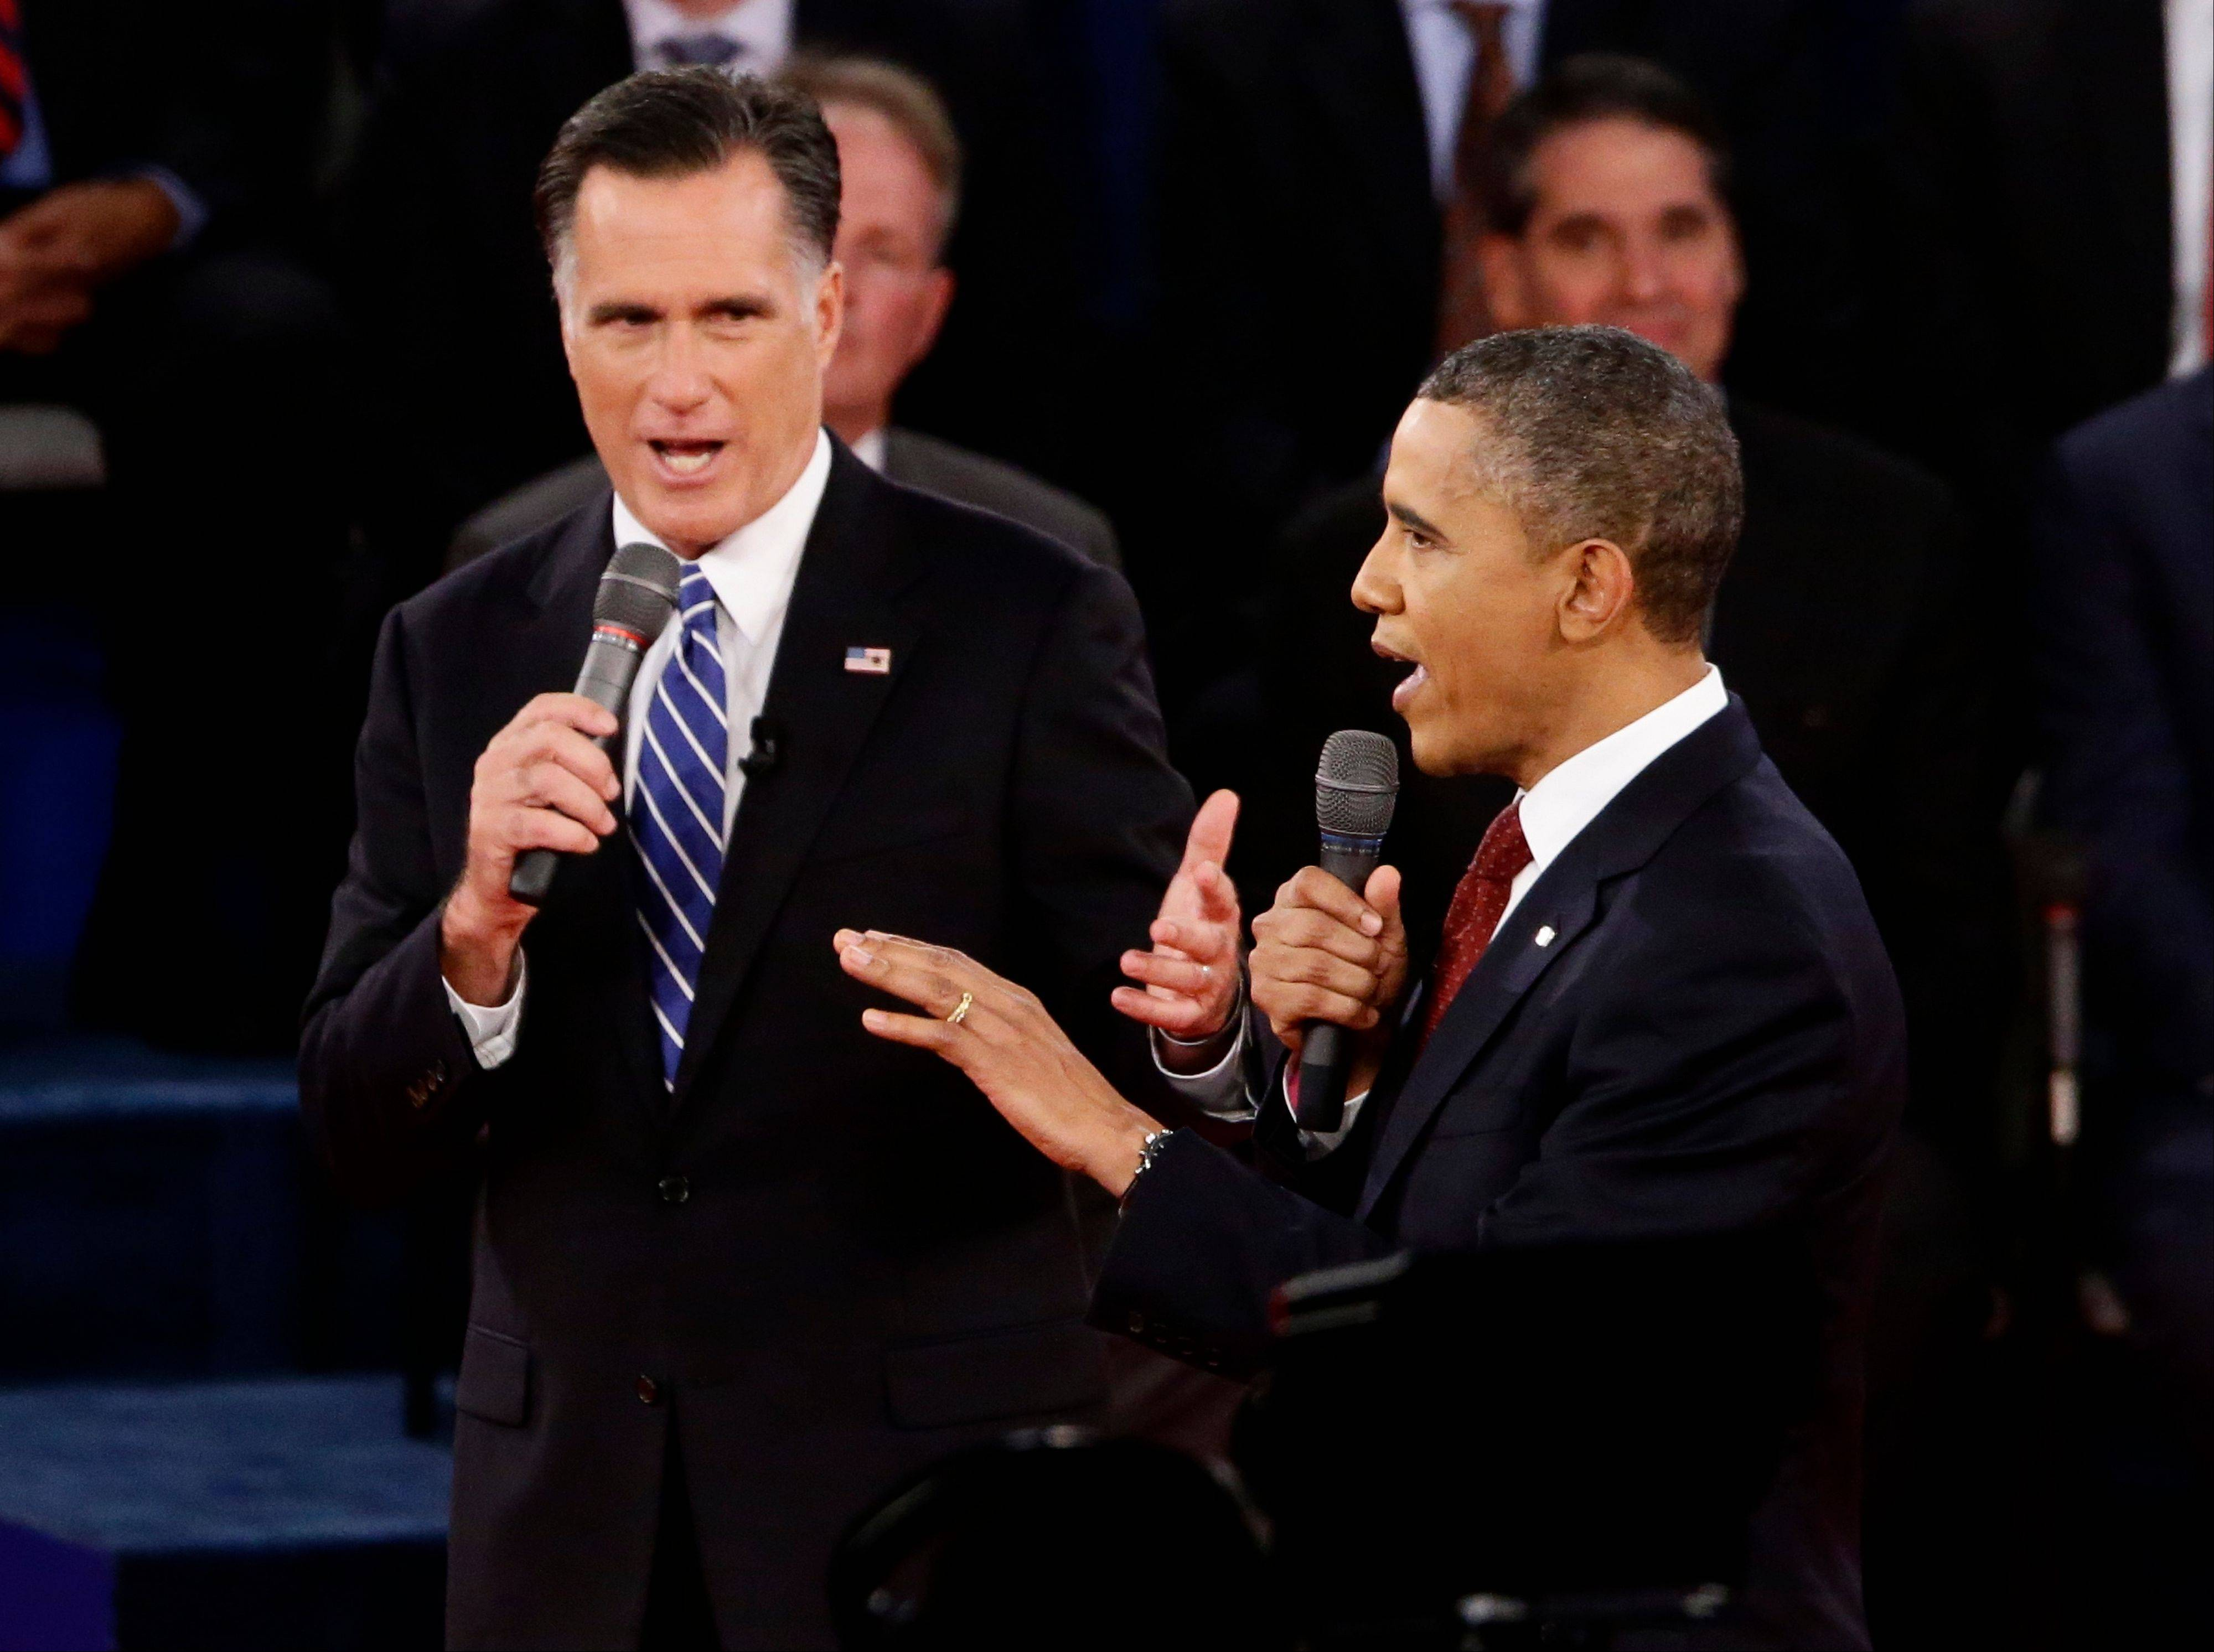 President Barack Obama and Republican presidential candidate and former Massachusetts Gov. Mitt Romney debate at Hofstra University in Hempstead, N.Y., Tuesday.